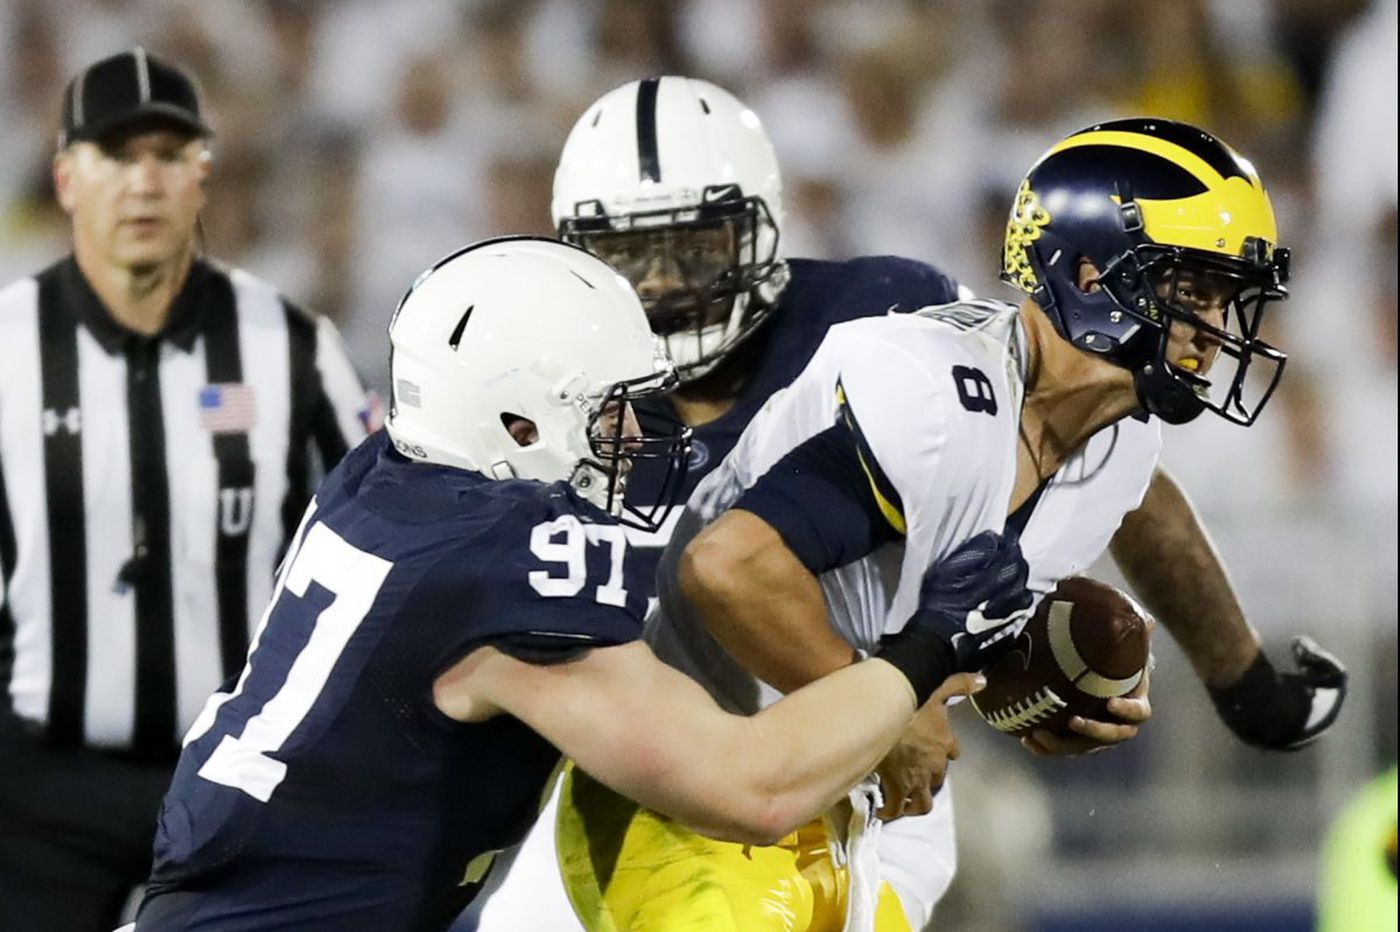 Nittany Lions' defense not the same without defensive end Ryan Buchholz